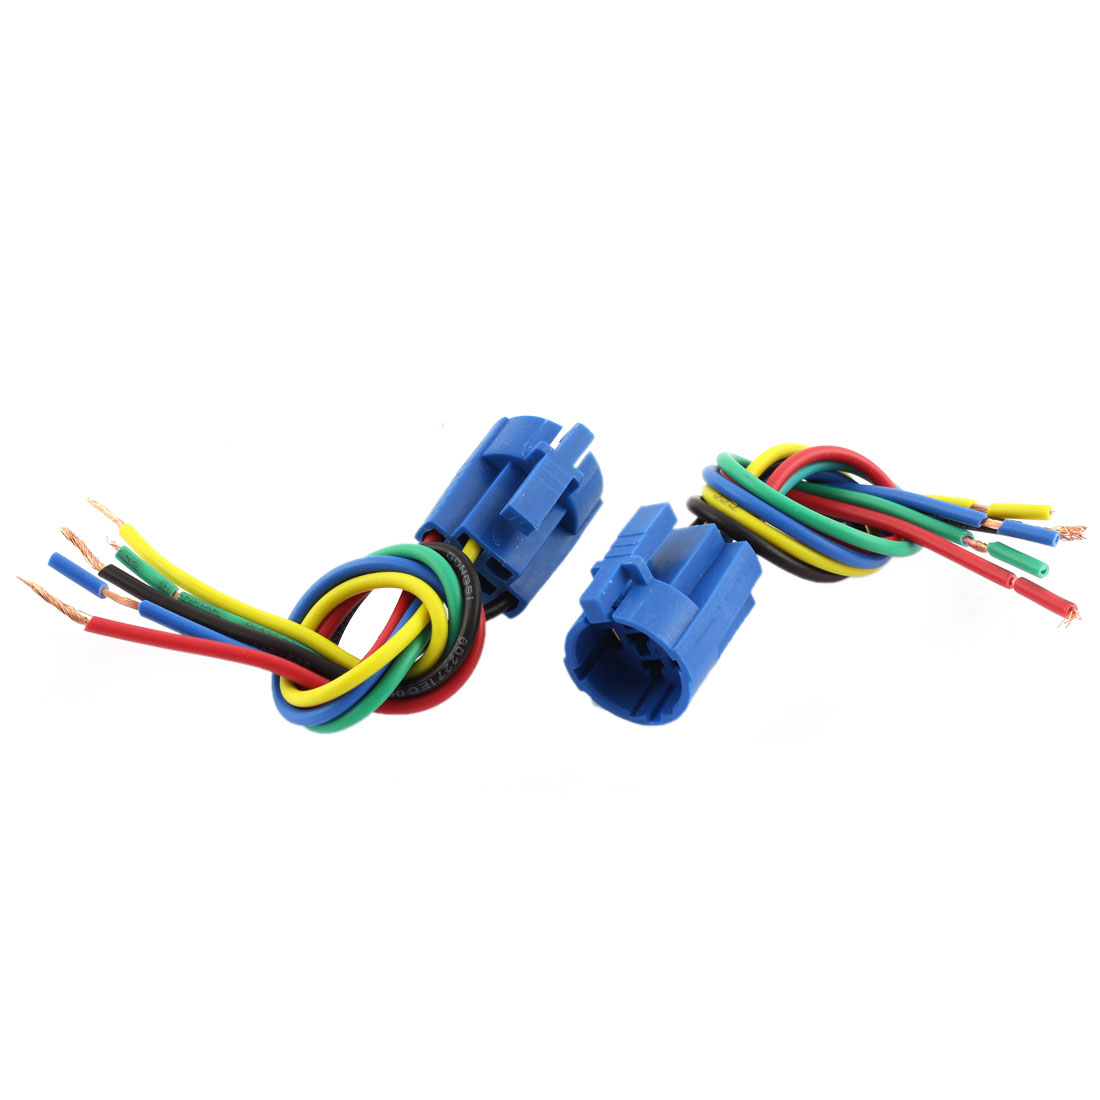 2PCS Car 19mm Socket Adapter Wire Harness for Metal Switch ON/OFF Buttons